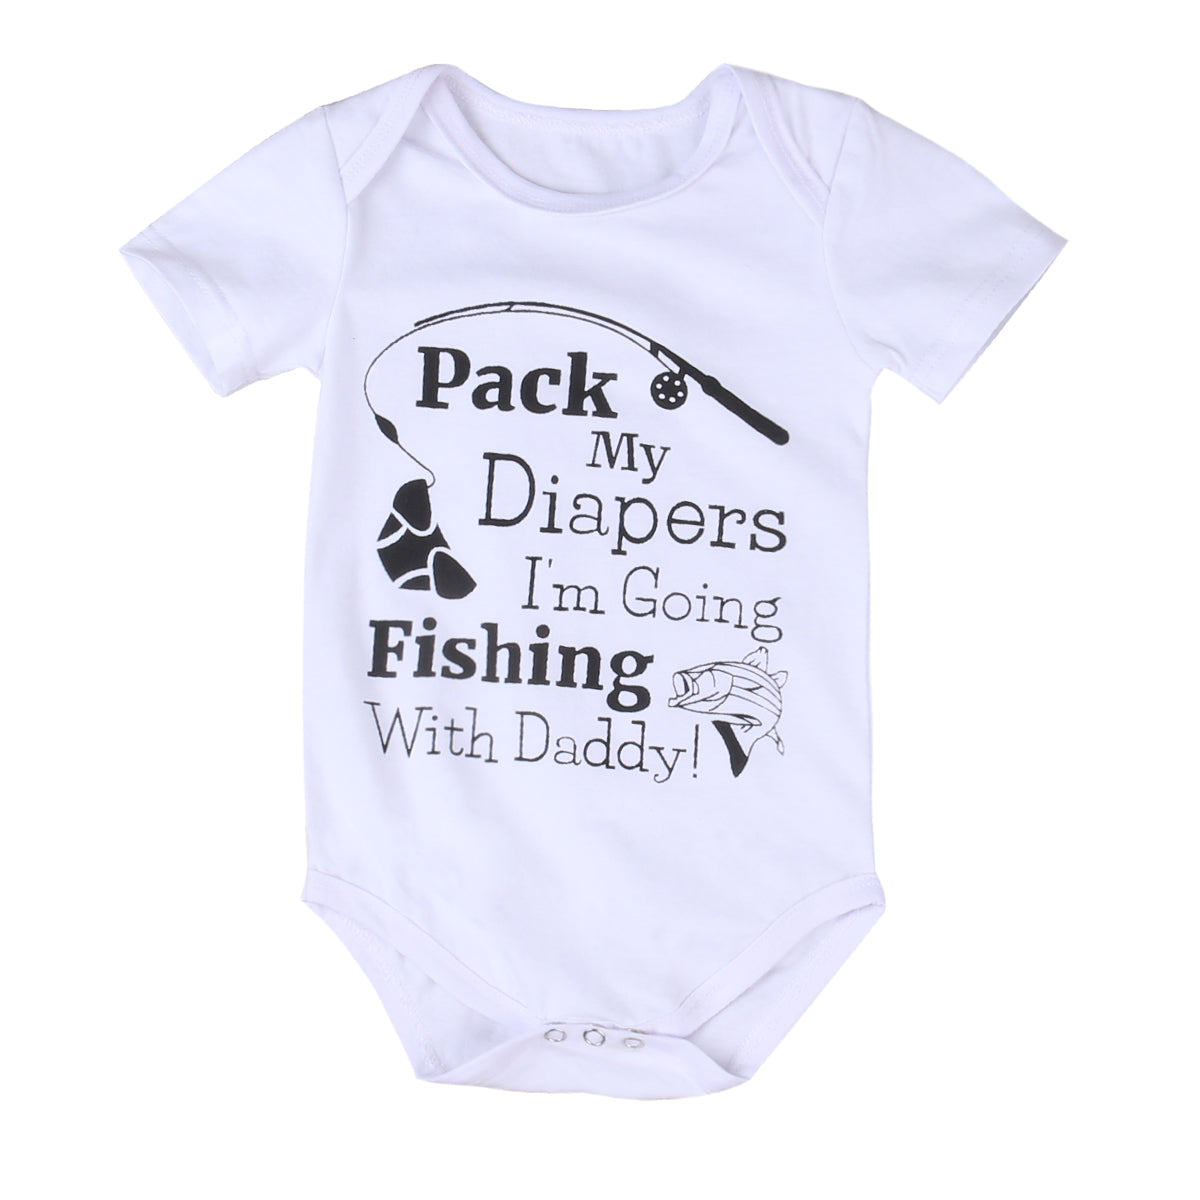 Gone Fishing With Daddy Onesie